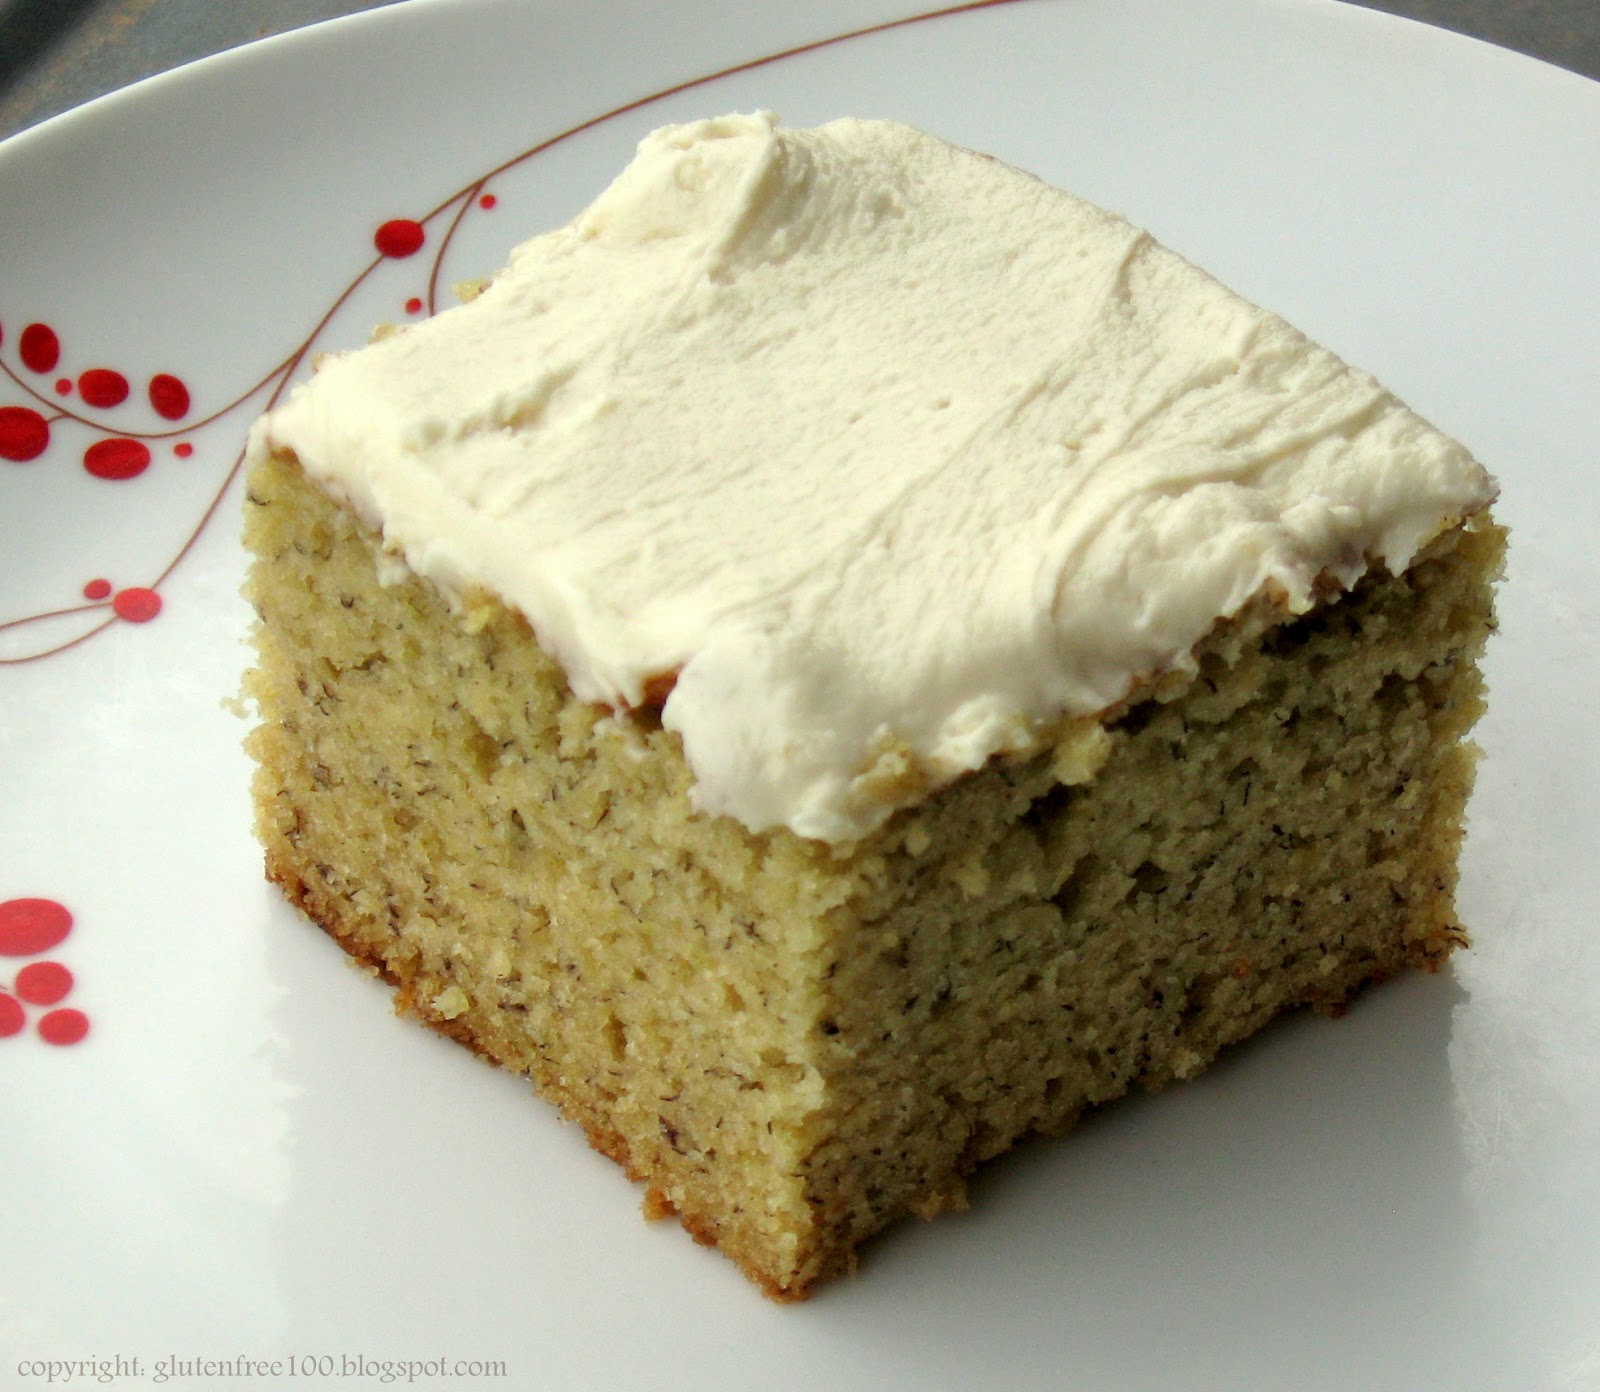 Free Cake Recipes Pictures : Gluten Free Banana Cake with Browned Butter Frosting Recipe